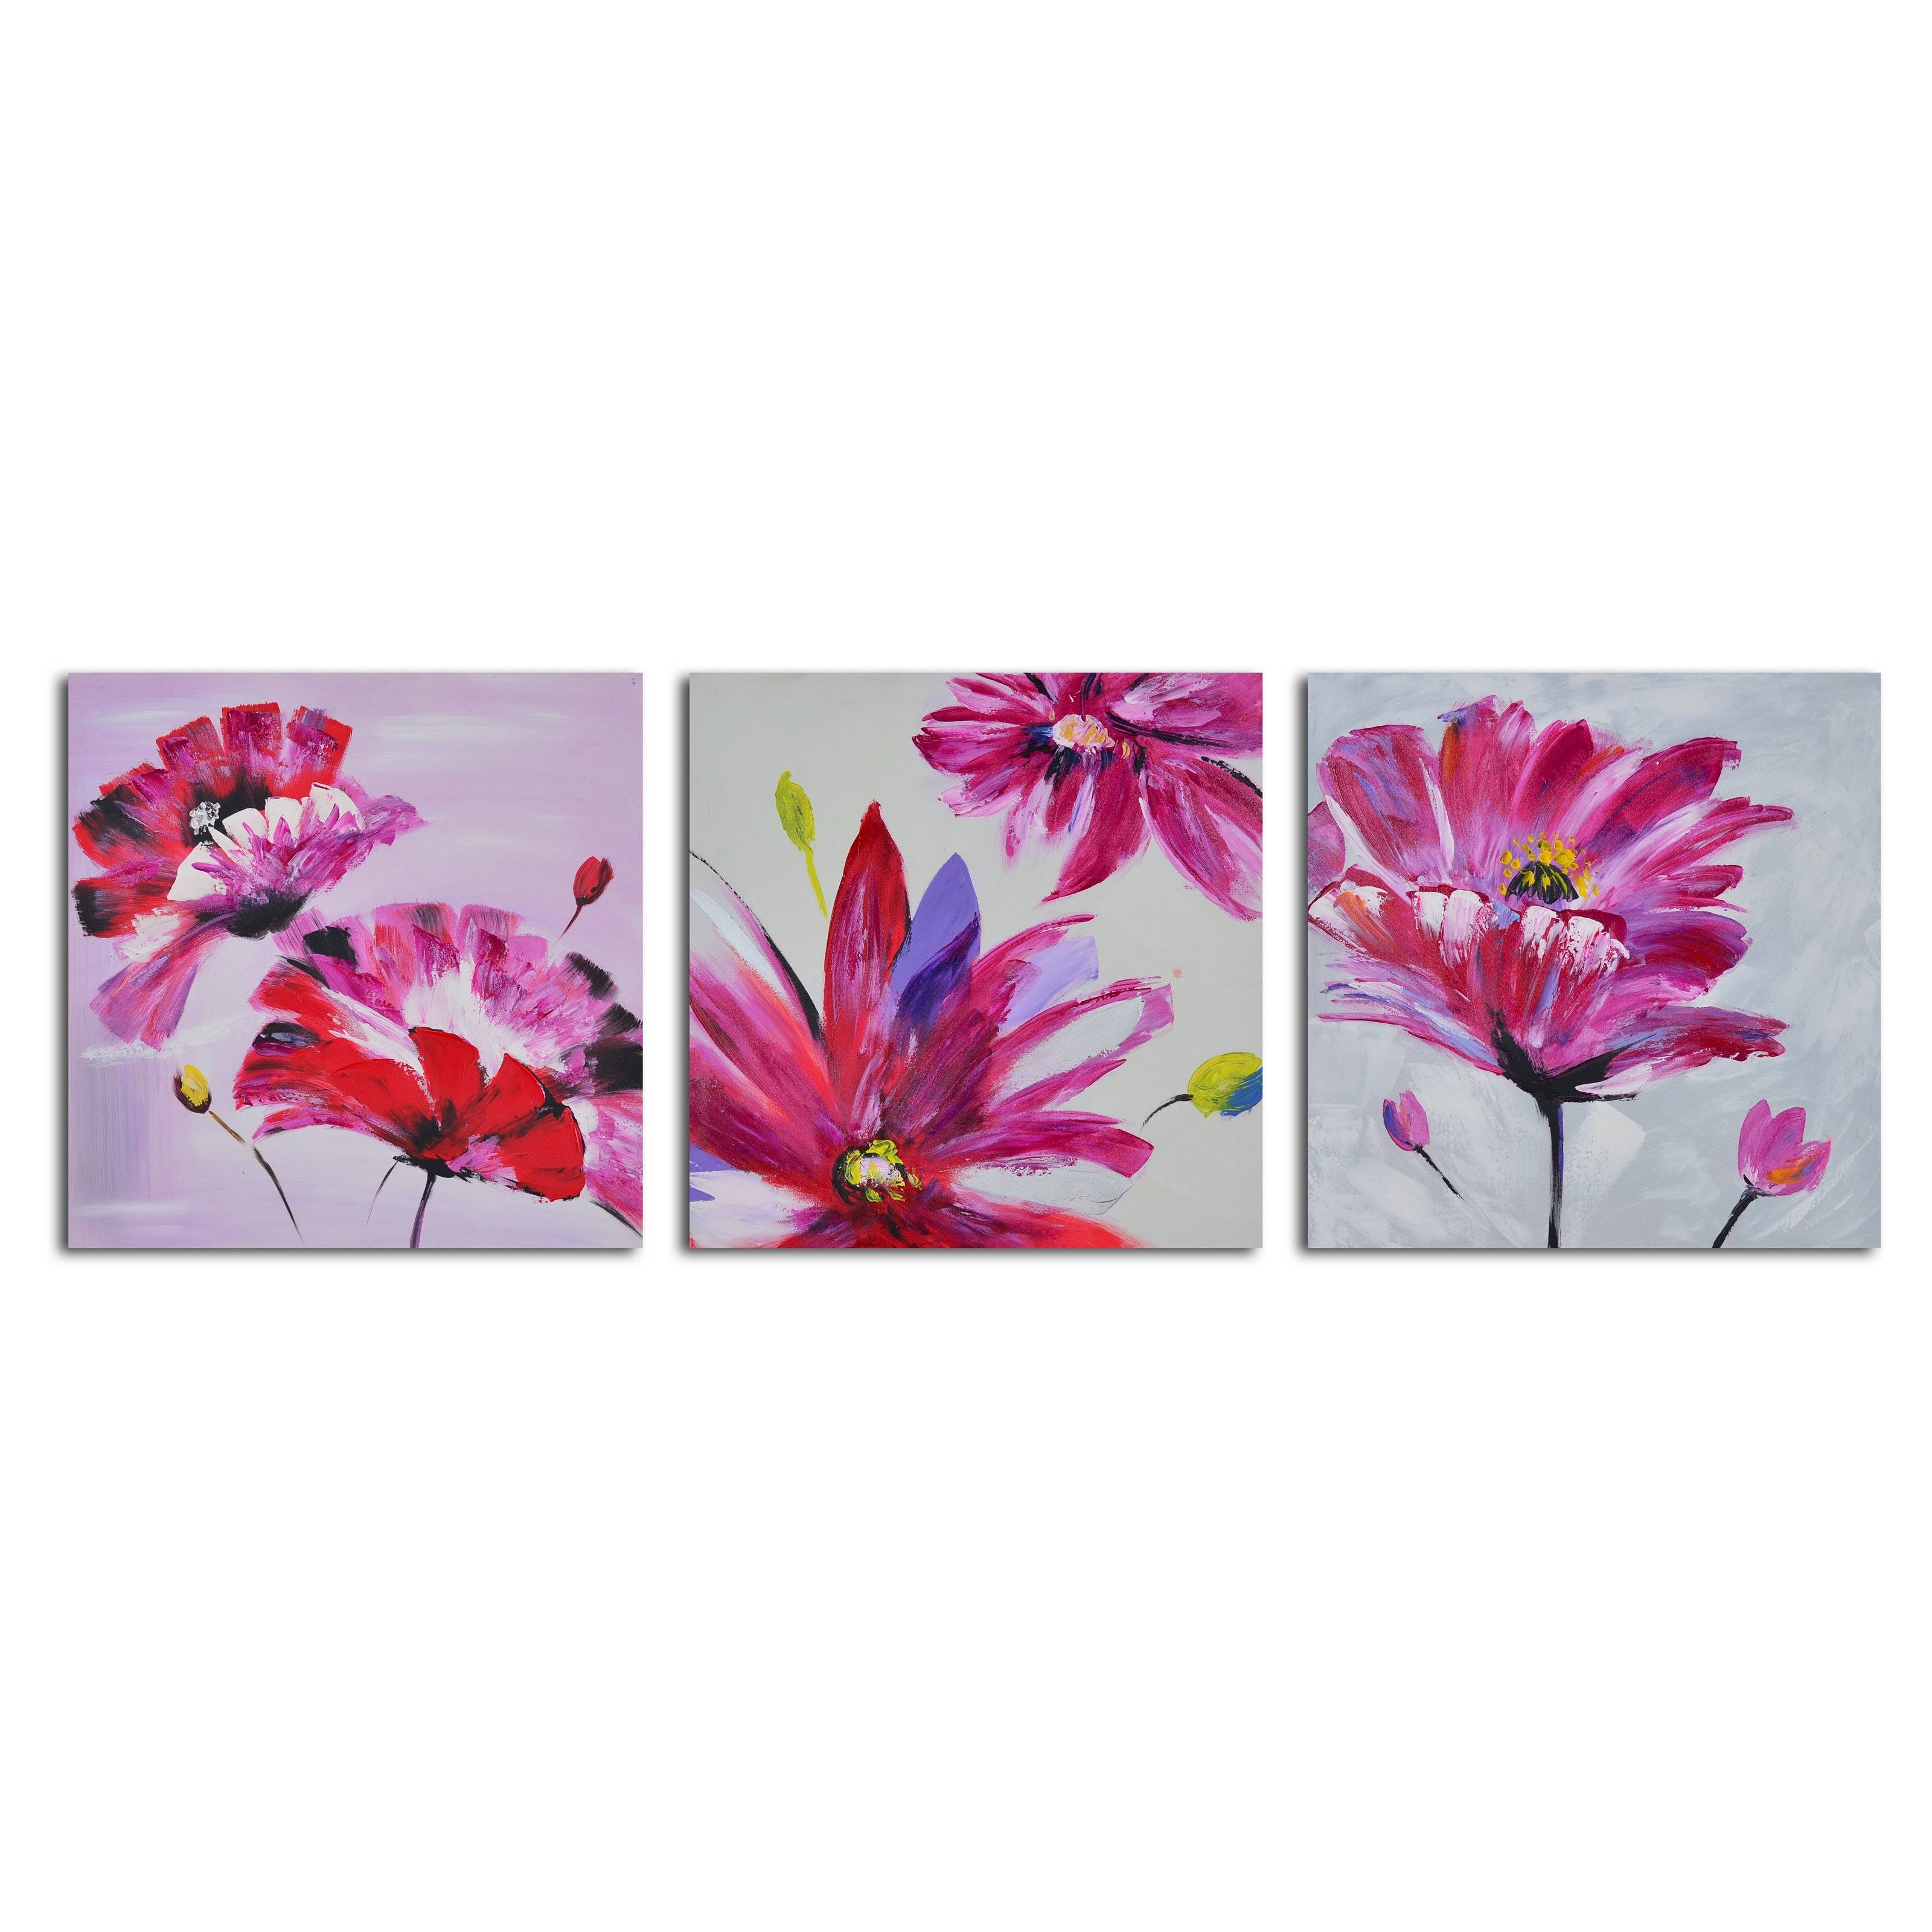 Frenzy Of Fuschia Florals 3 Piece Canvas Wall Art Set | Hayneedle With Latest Canvas Wall Art 3 Piece Sets (View 10 of 20)